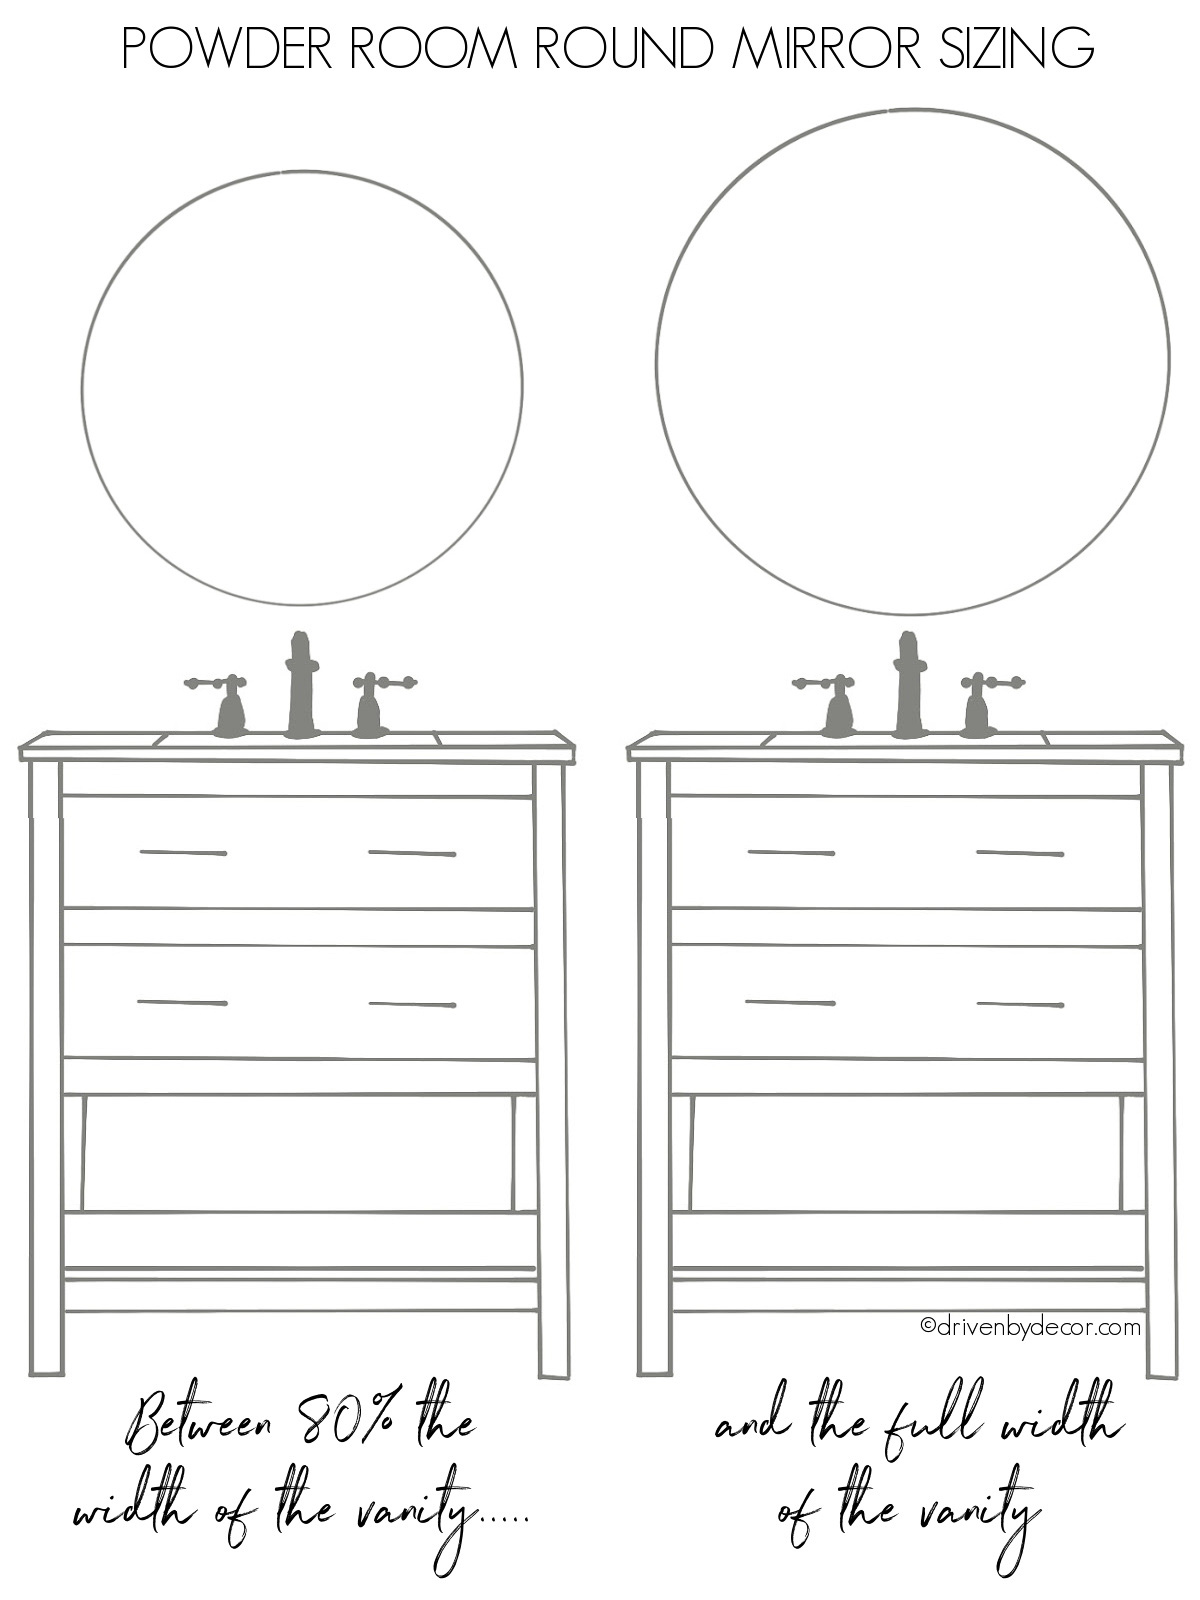 Tips for how big of a round mirror to use over a powder room vanity